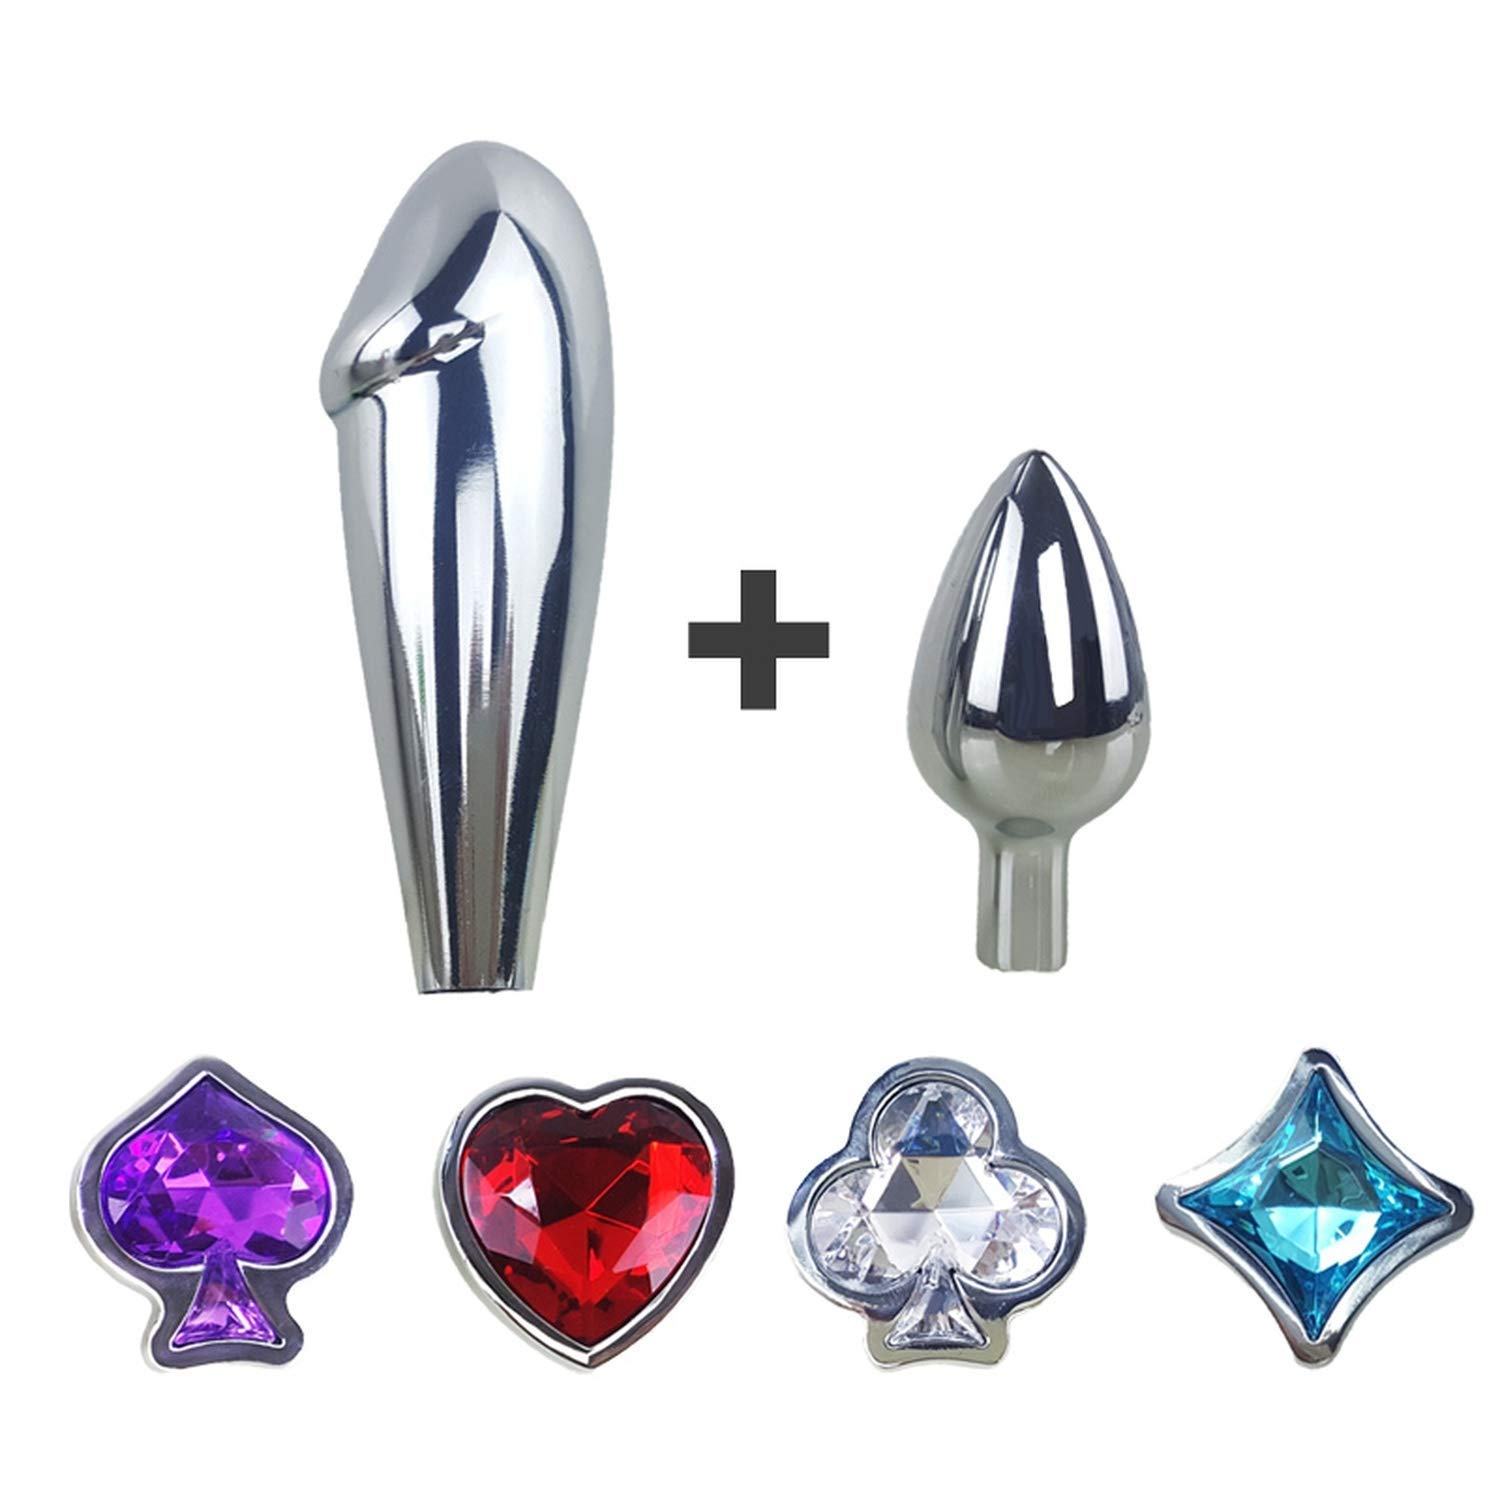 XUGEN Shirt Sex Toy Shop New Metal Crystal Anal Plugs for Couples Butt Plug Sets Big Anal Sex Toys for Women & Men Booty Beads Adult Sex Products,6pieces